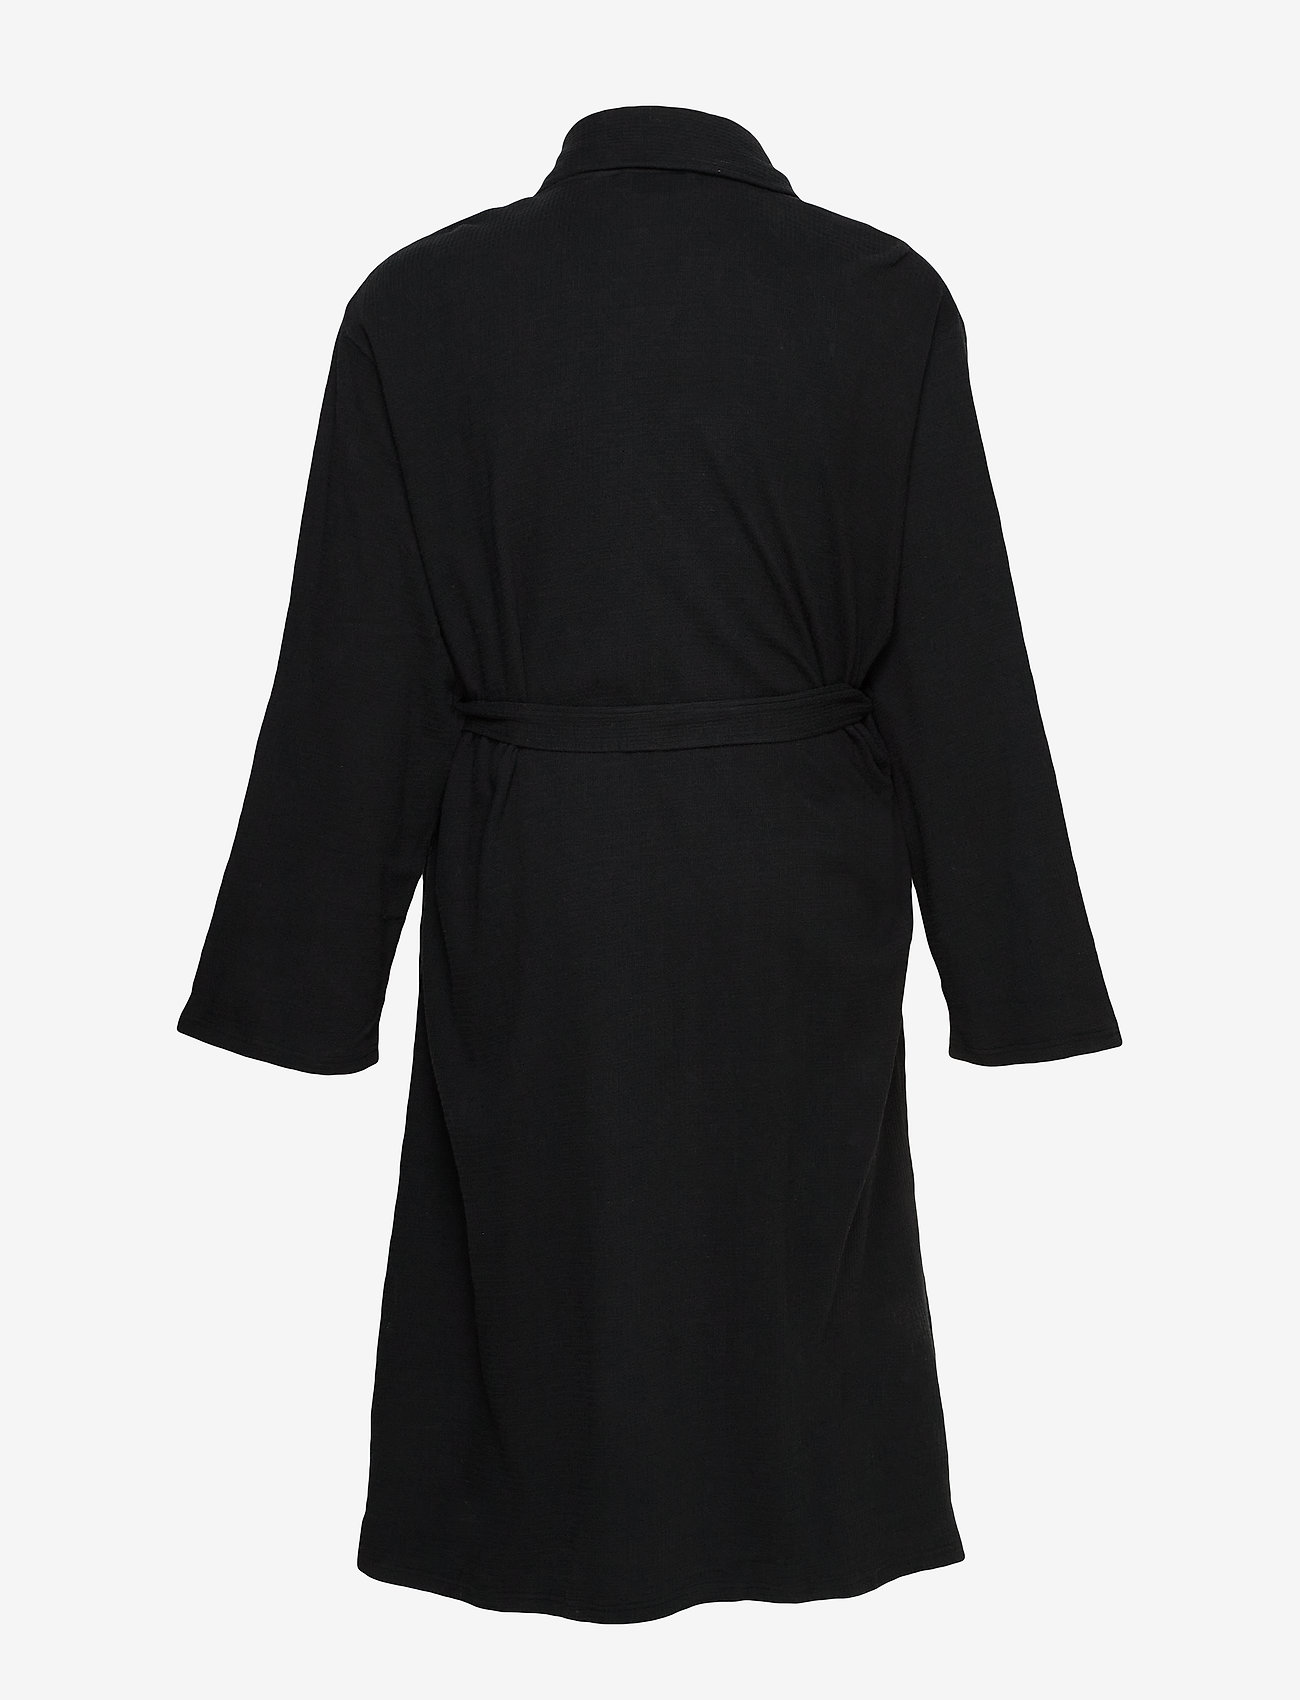 Resteröds Bathrope (Black) (559.20 kr) - Resteröds